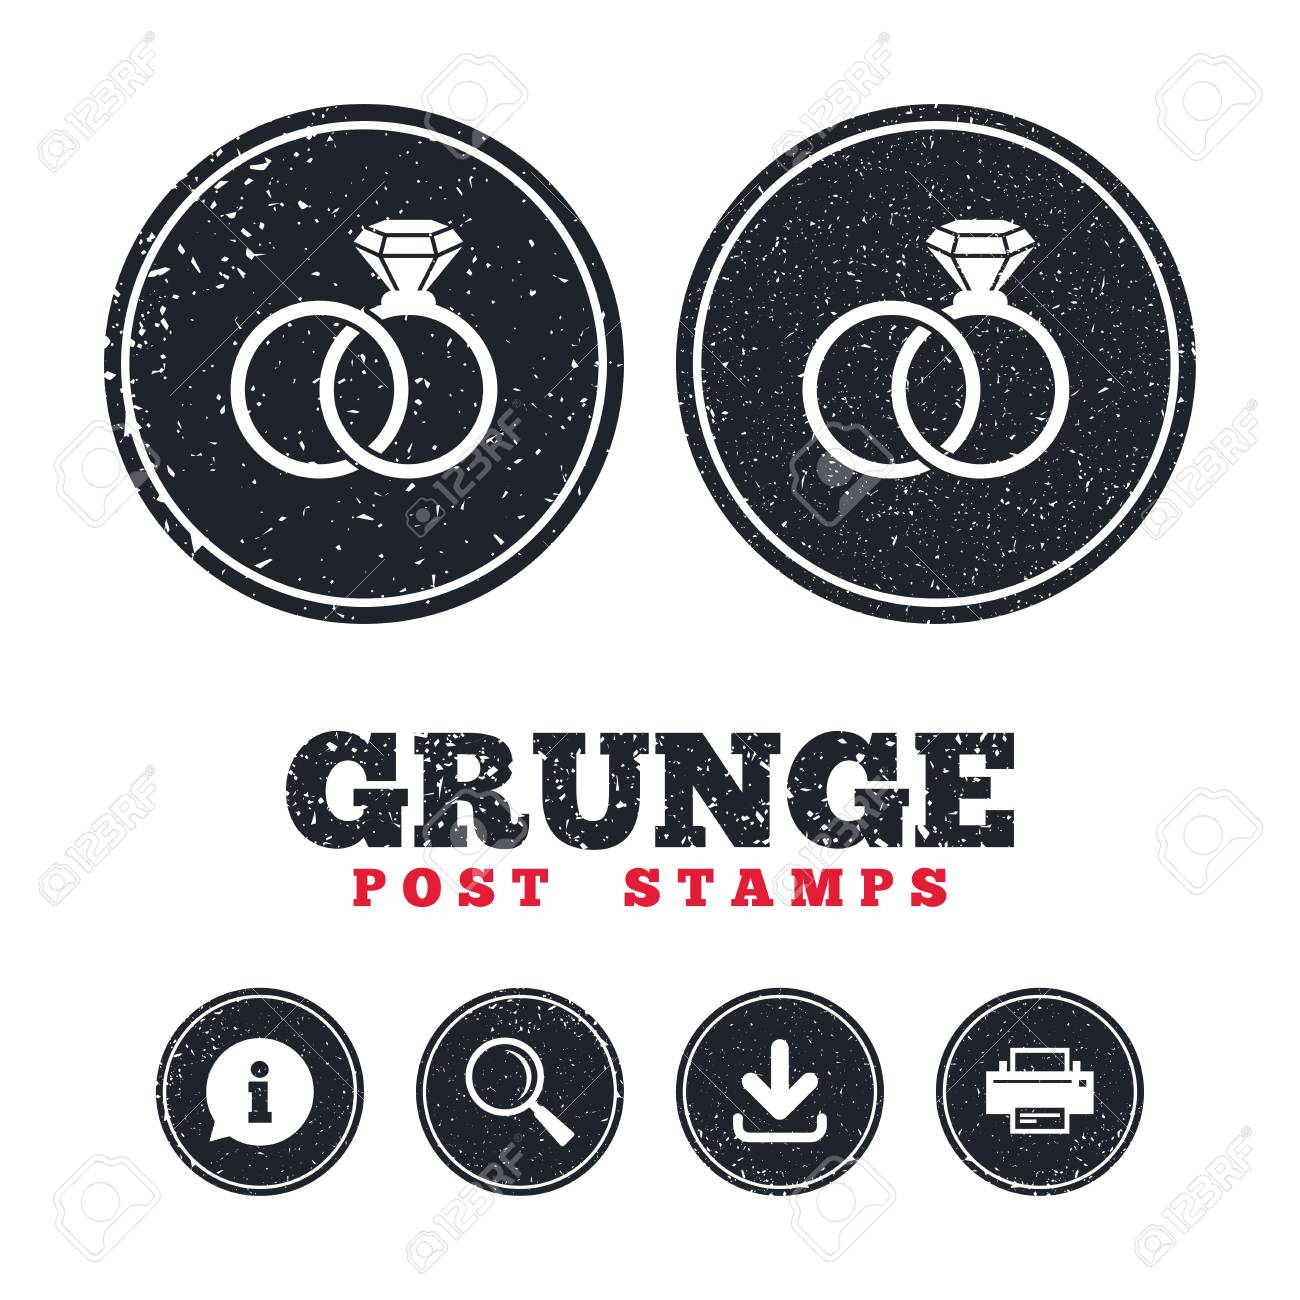 Grunge Post Stamps Wedding Rings Sign Icon Engagement Symbol